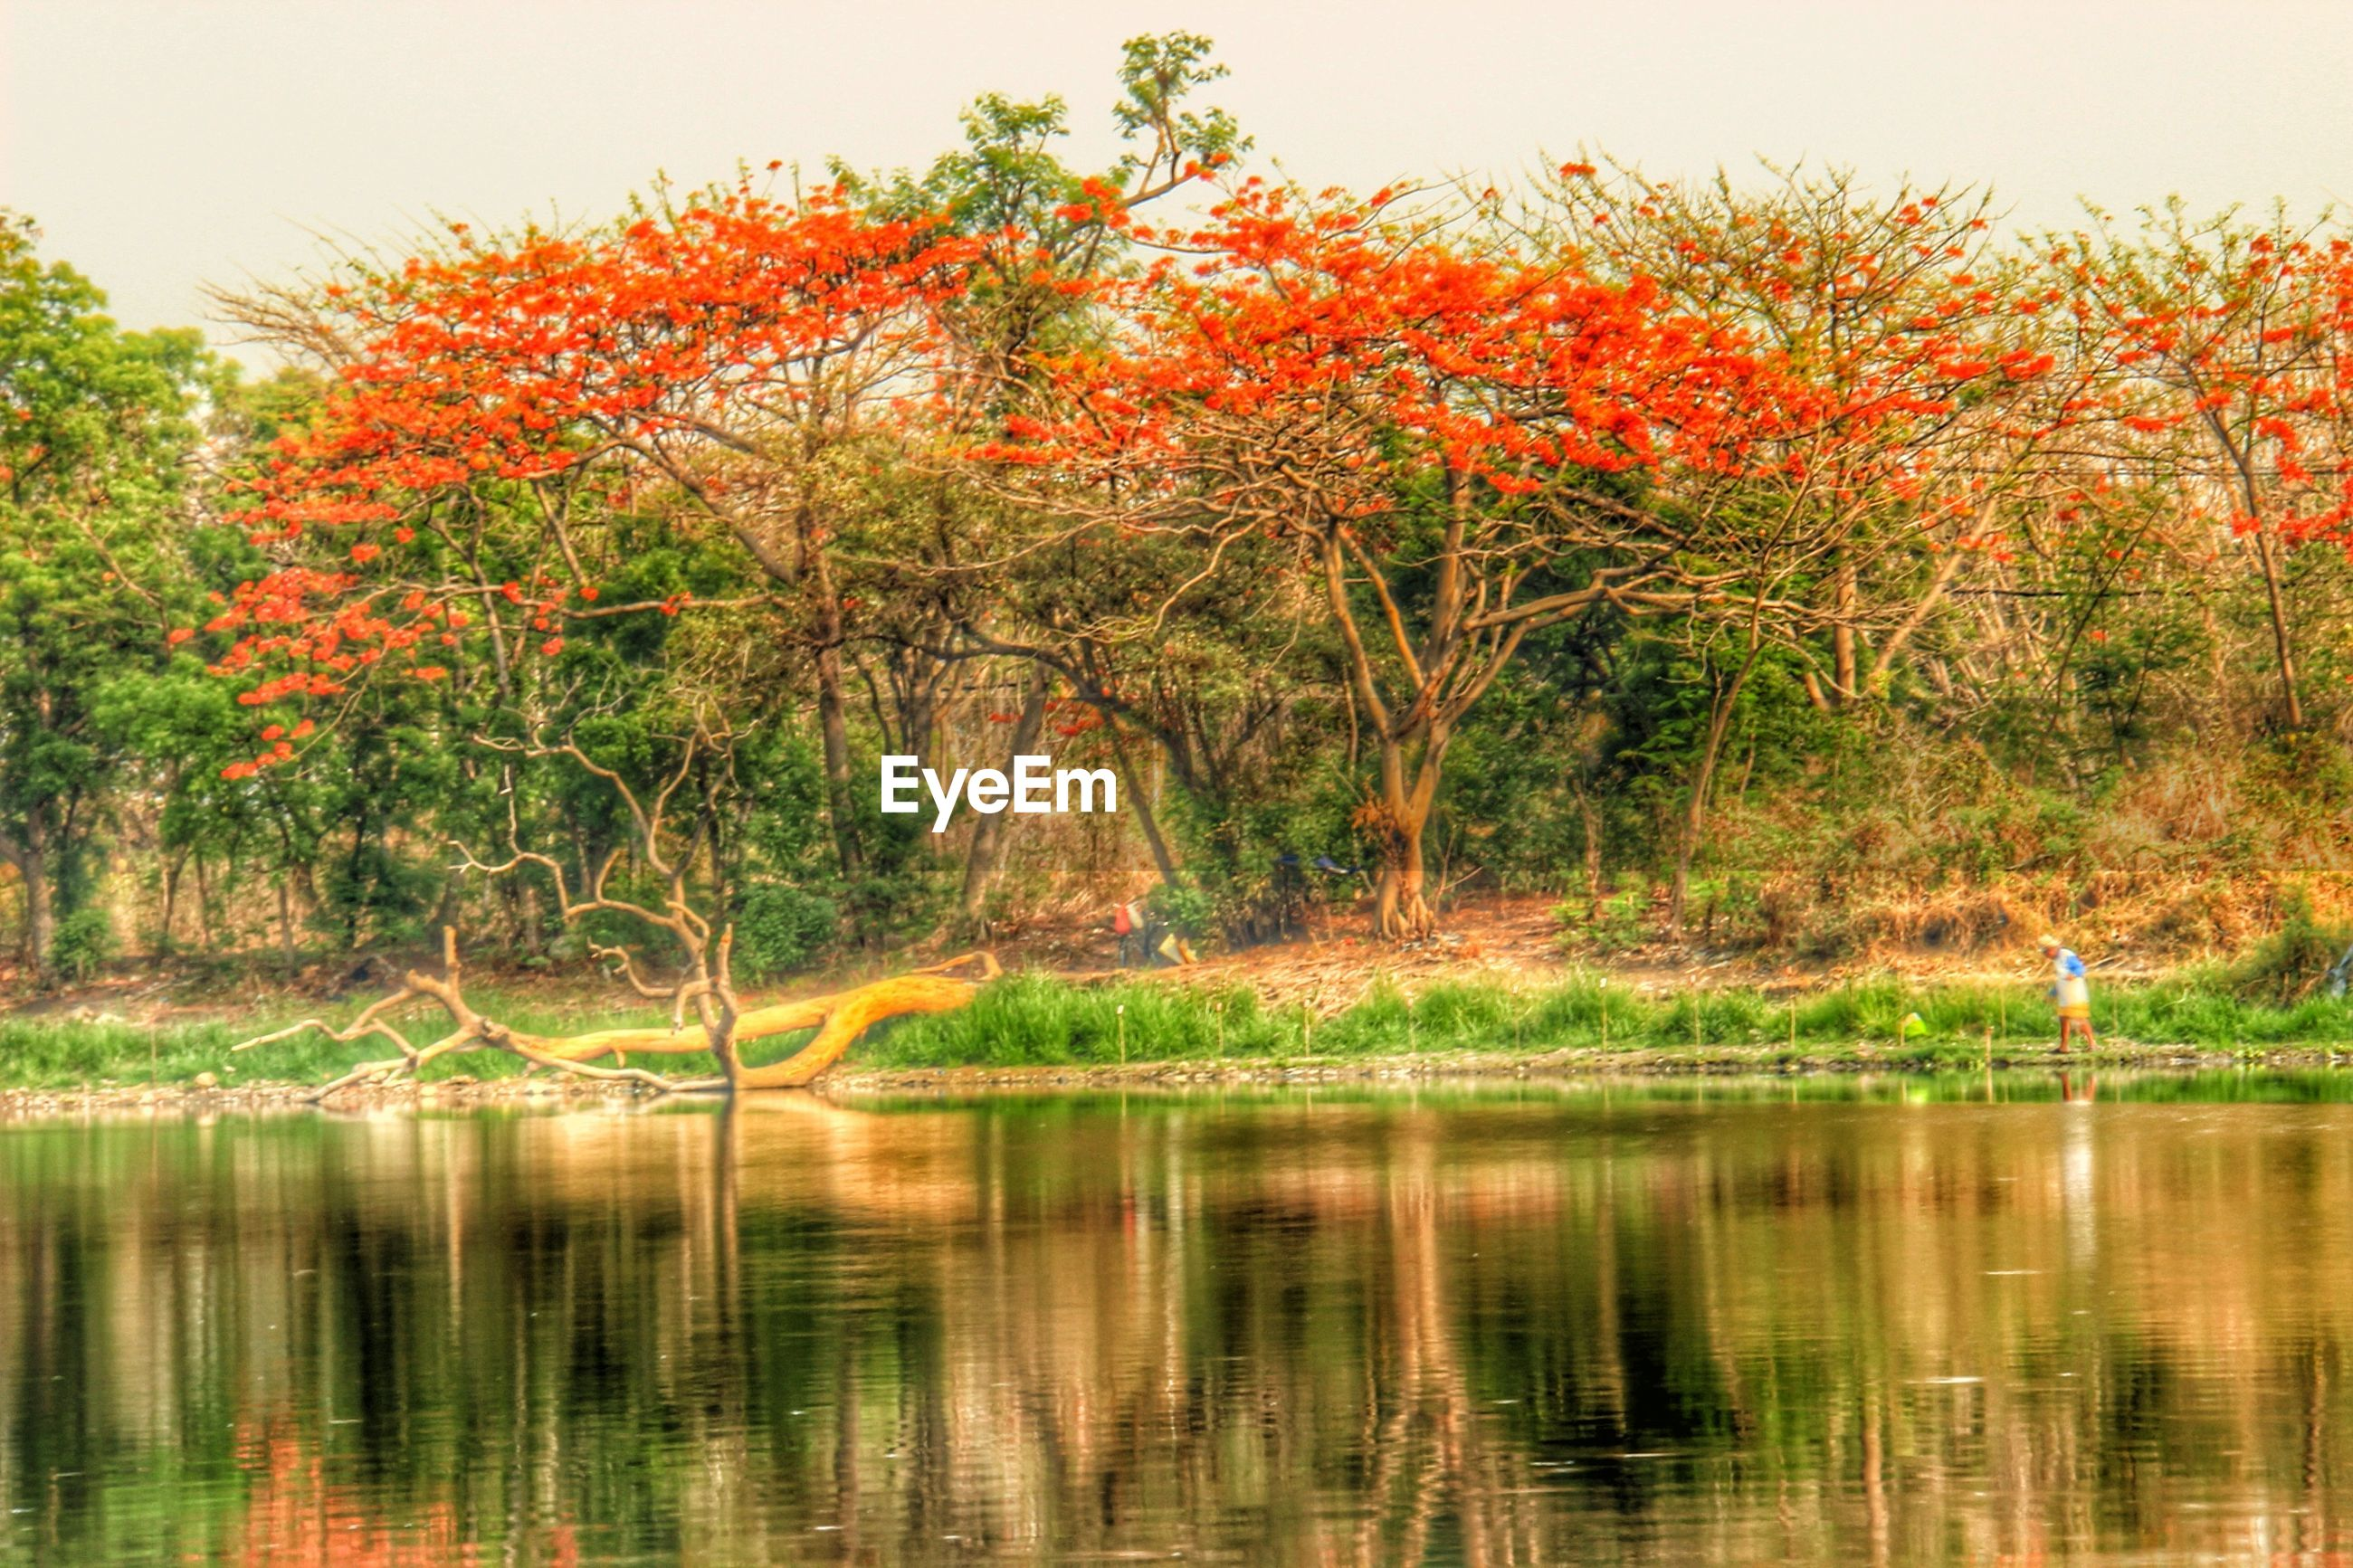 tree, water, reflection, lake, tranquility, tranquil scene, beauty in nature, waterfront, scenics, nature, autumn, change, growth, idyllic, clear sky, orange color, calm, river, outdoors, season